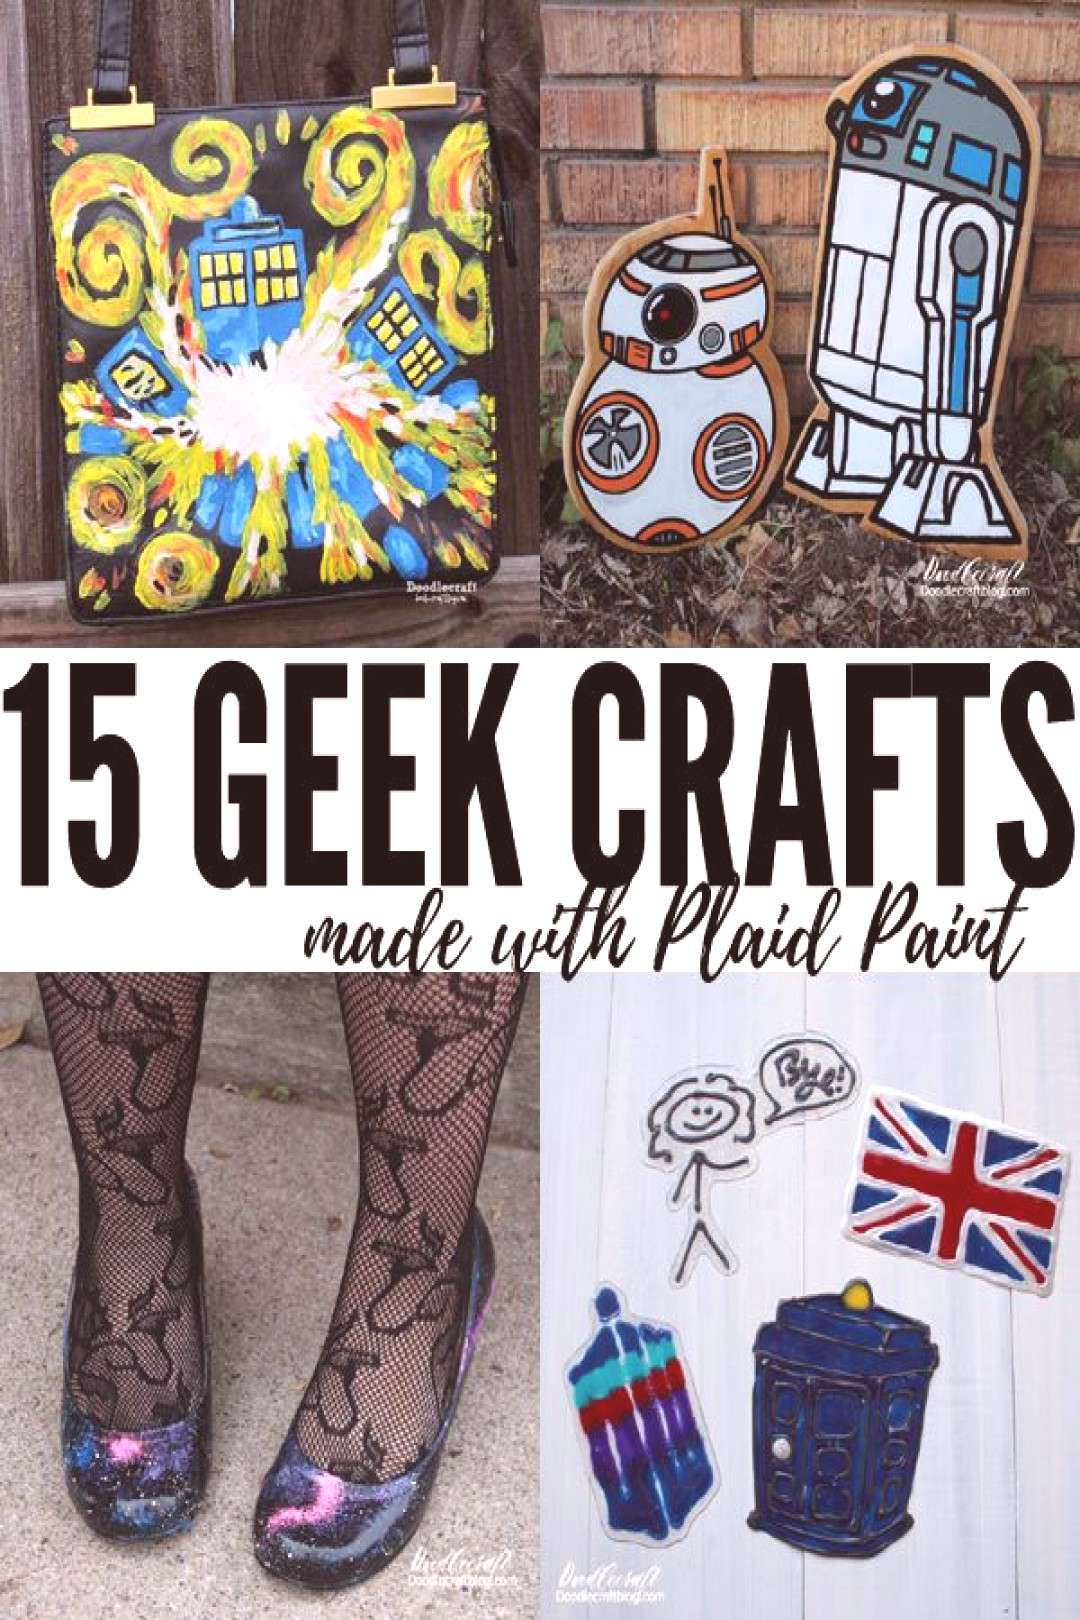 Plaid crafts giveaway with fifteen geekery inspired crafts roundup of doctor who, galaxy, star wars